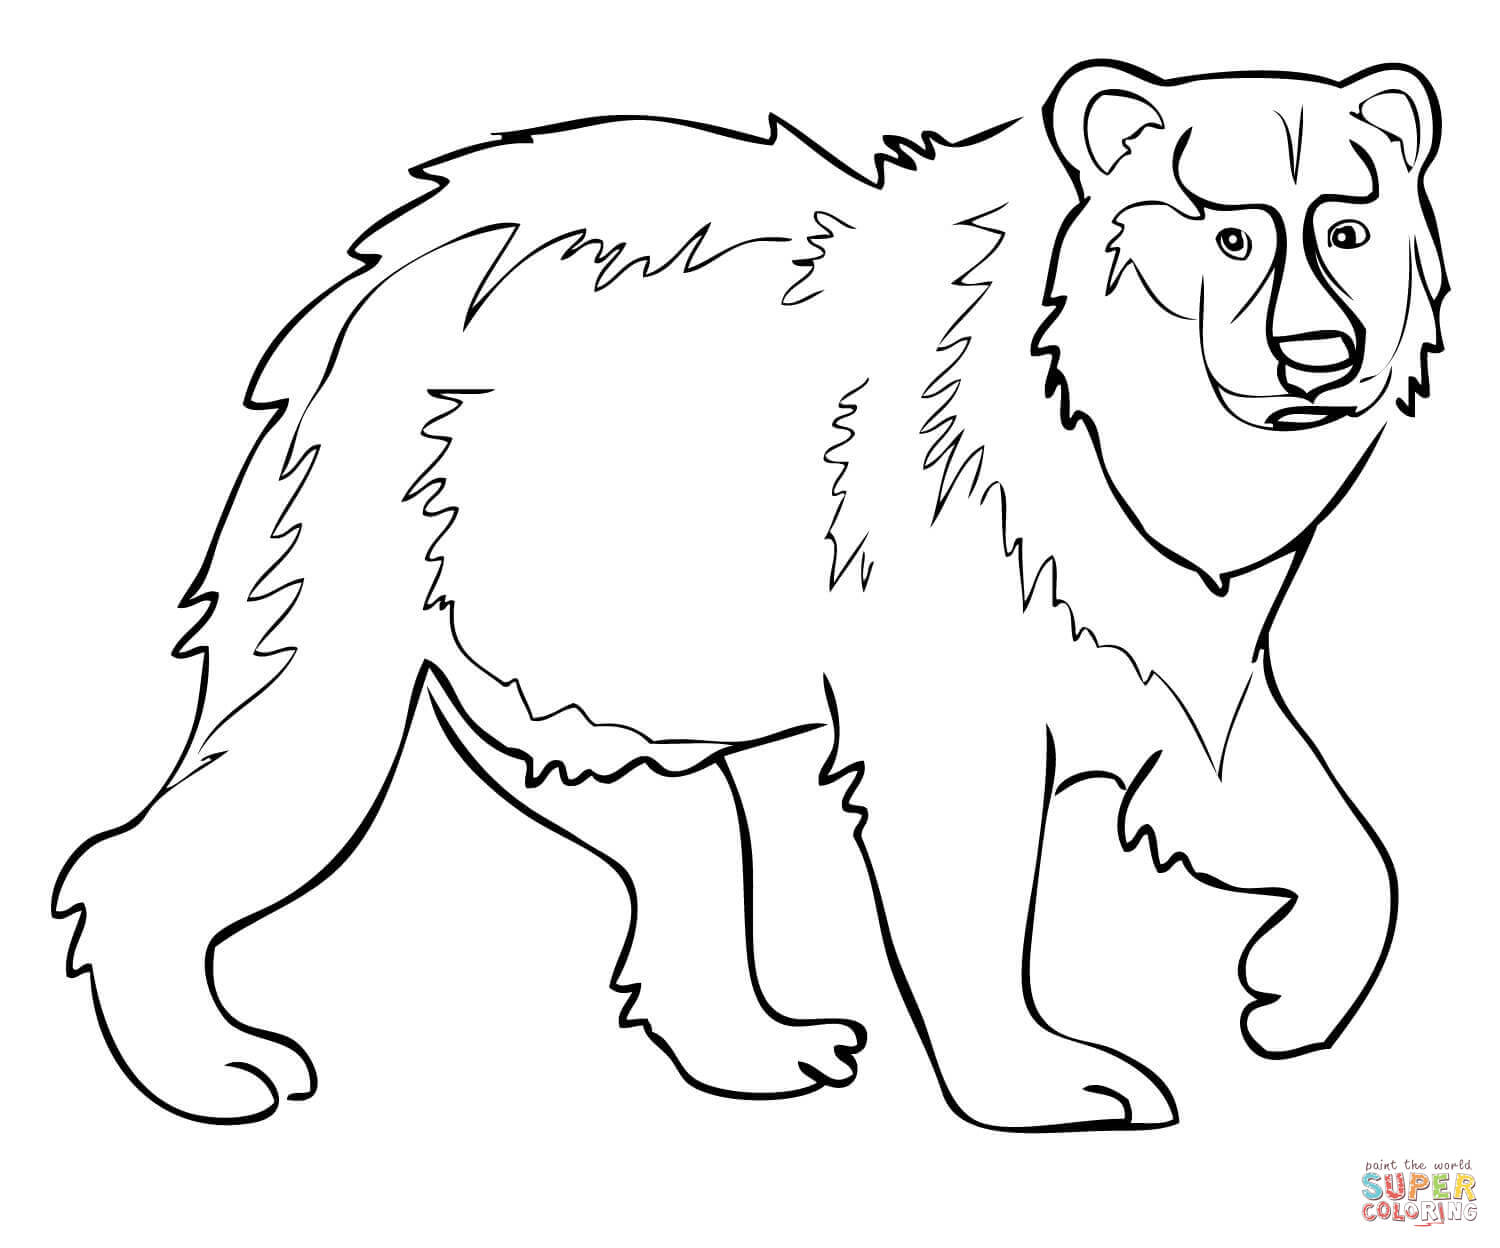 brown bear colouring page brown bear coloring page eric carle coloring home page bear brown colouring